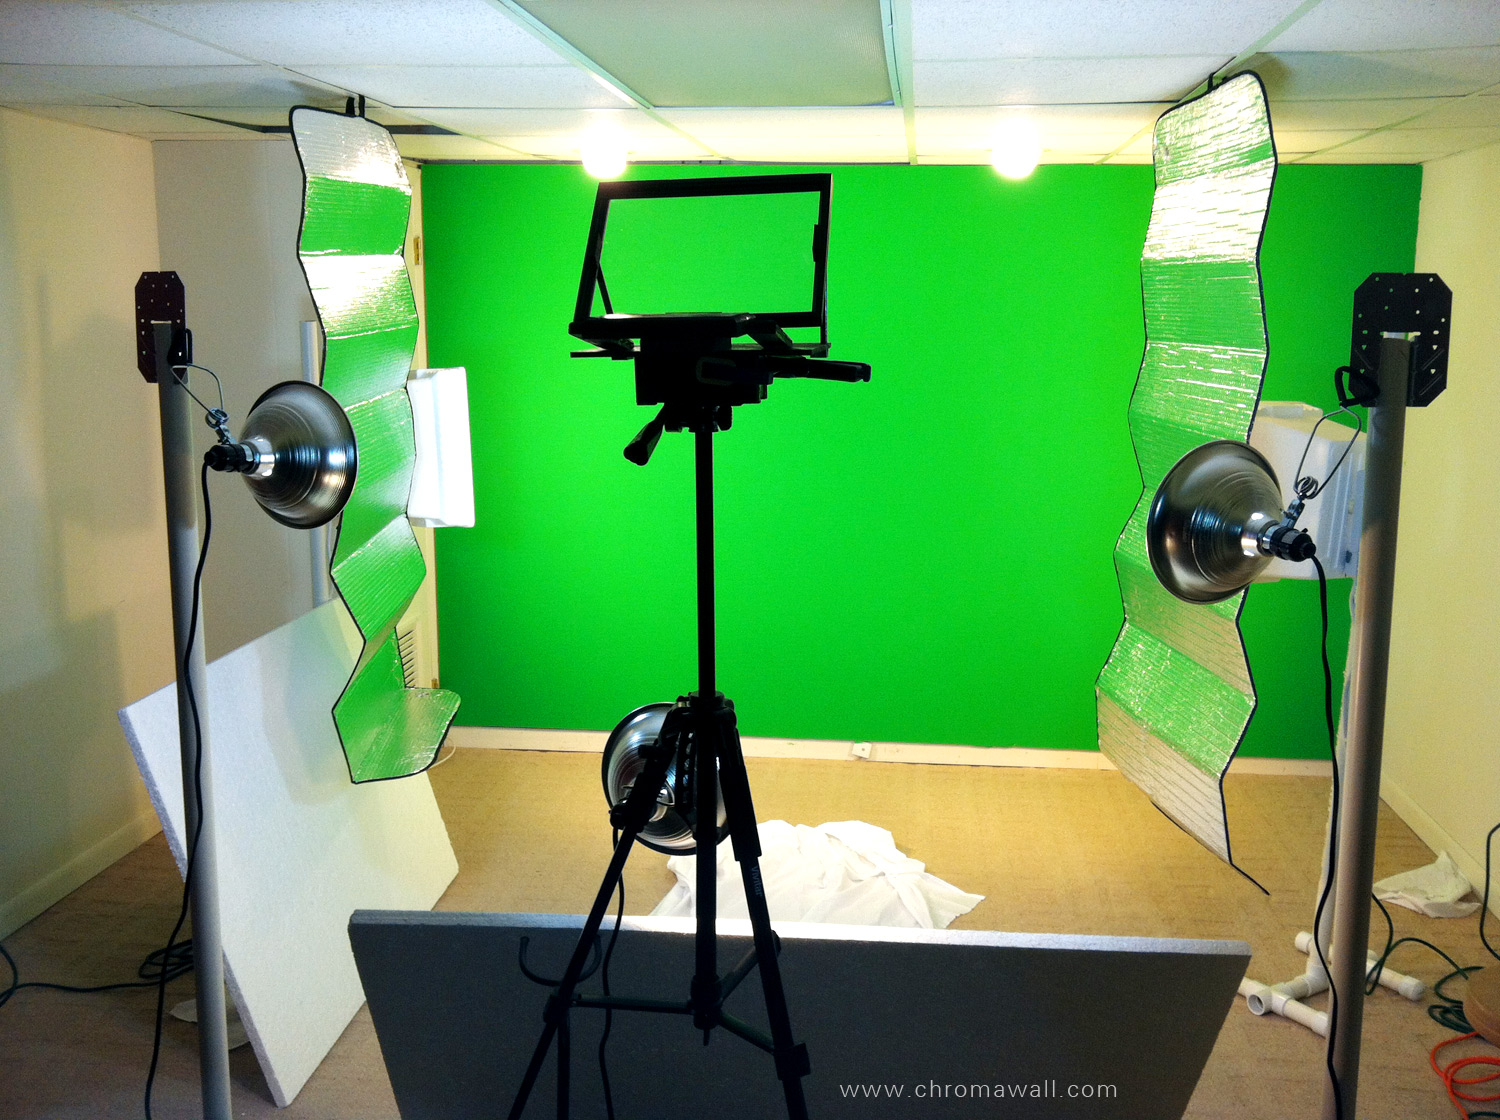 How To Build a Green Screen